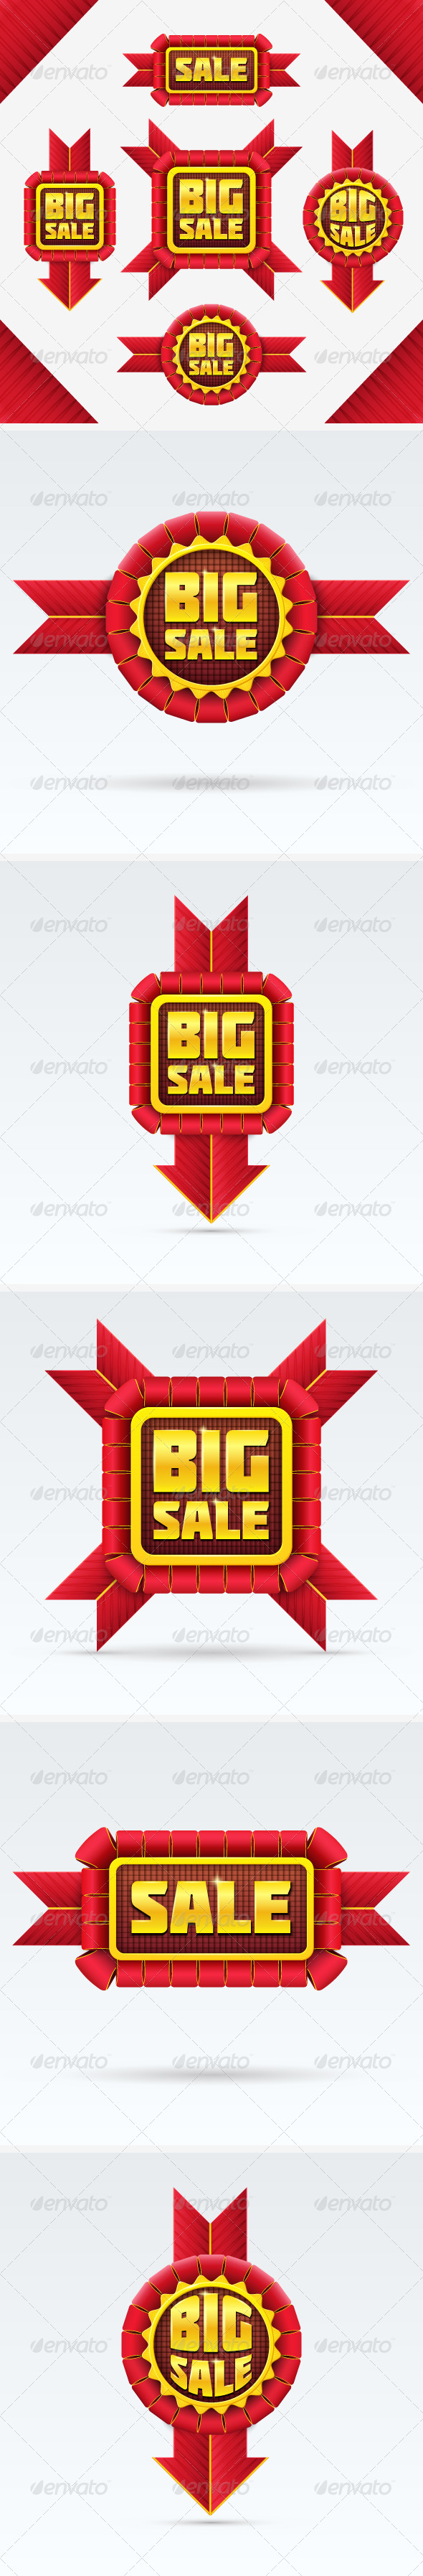 GraphicRiver Red Sale Badges Set 7672361